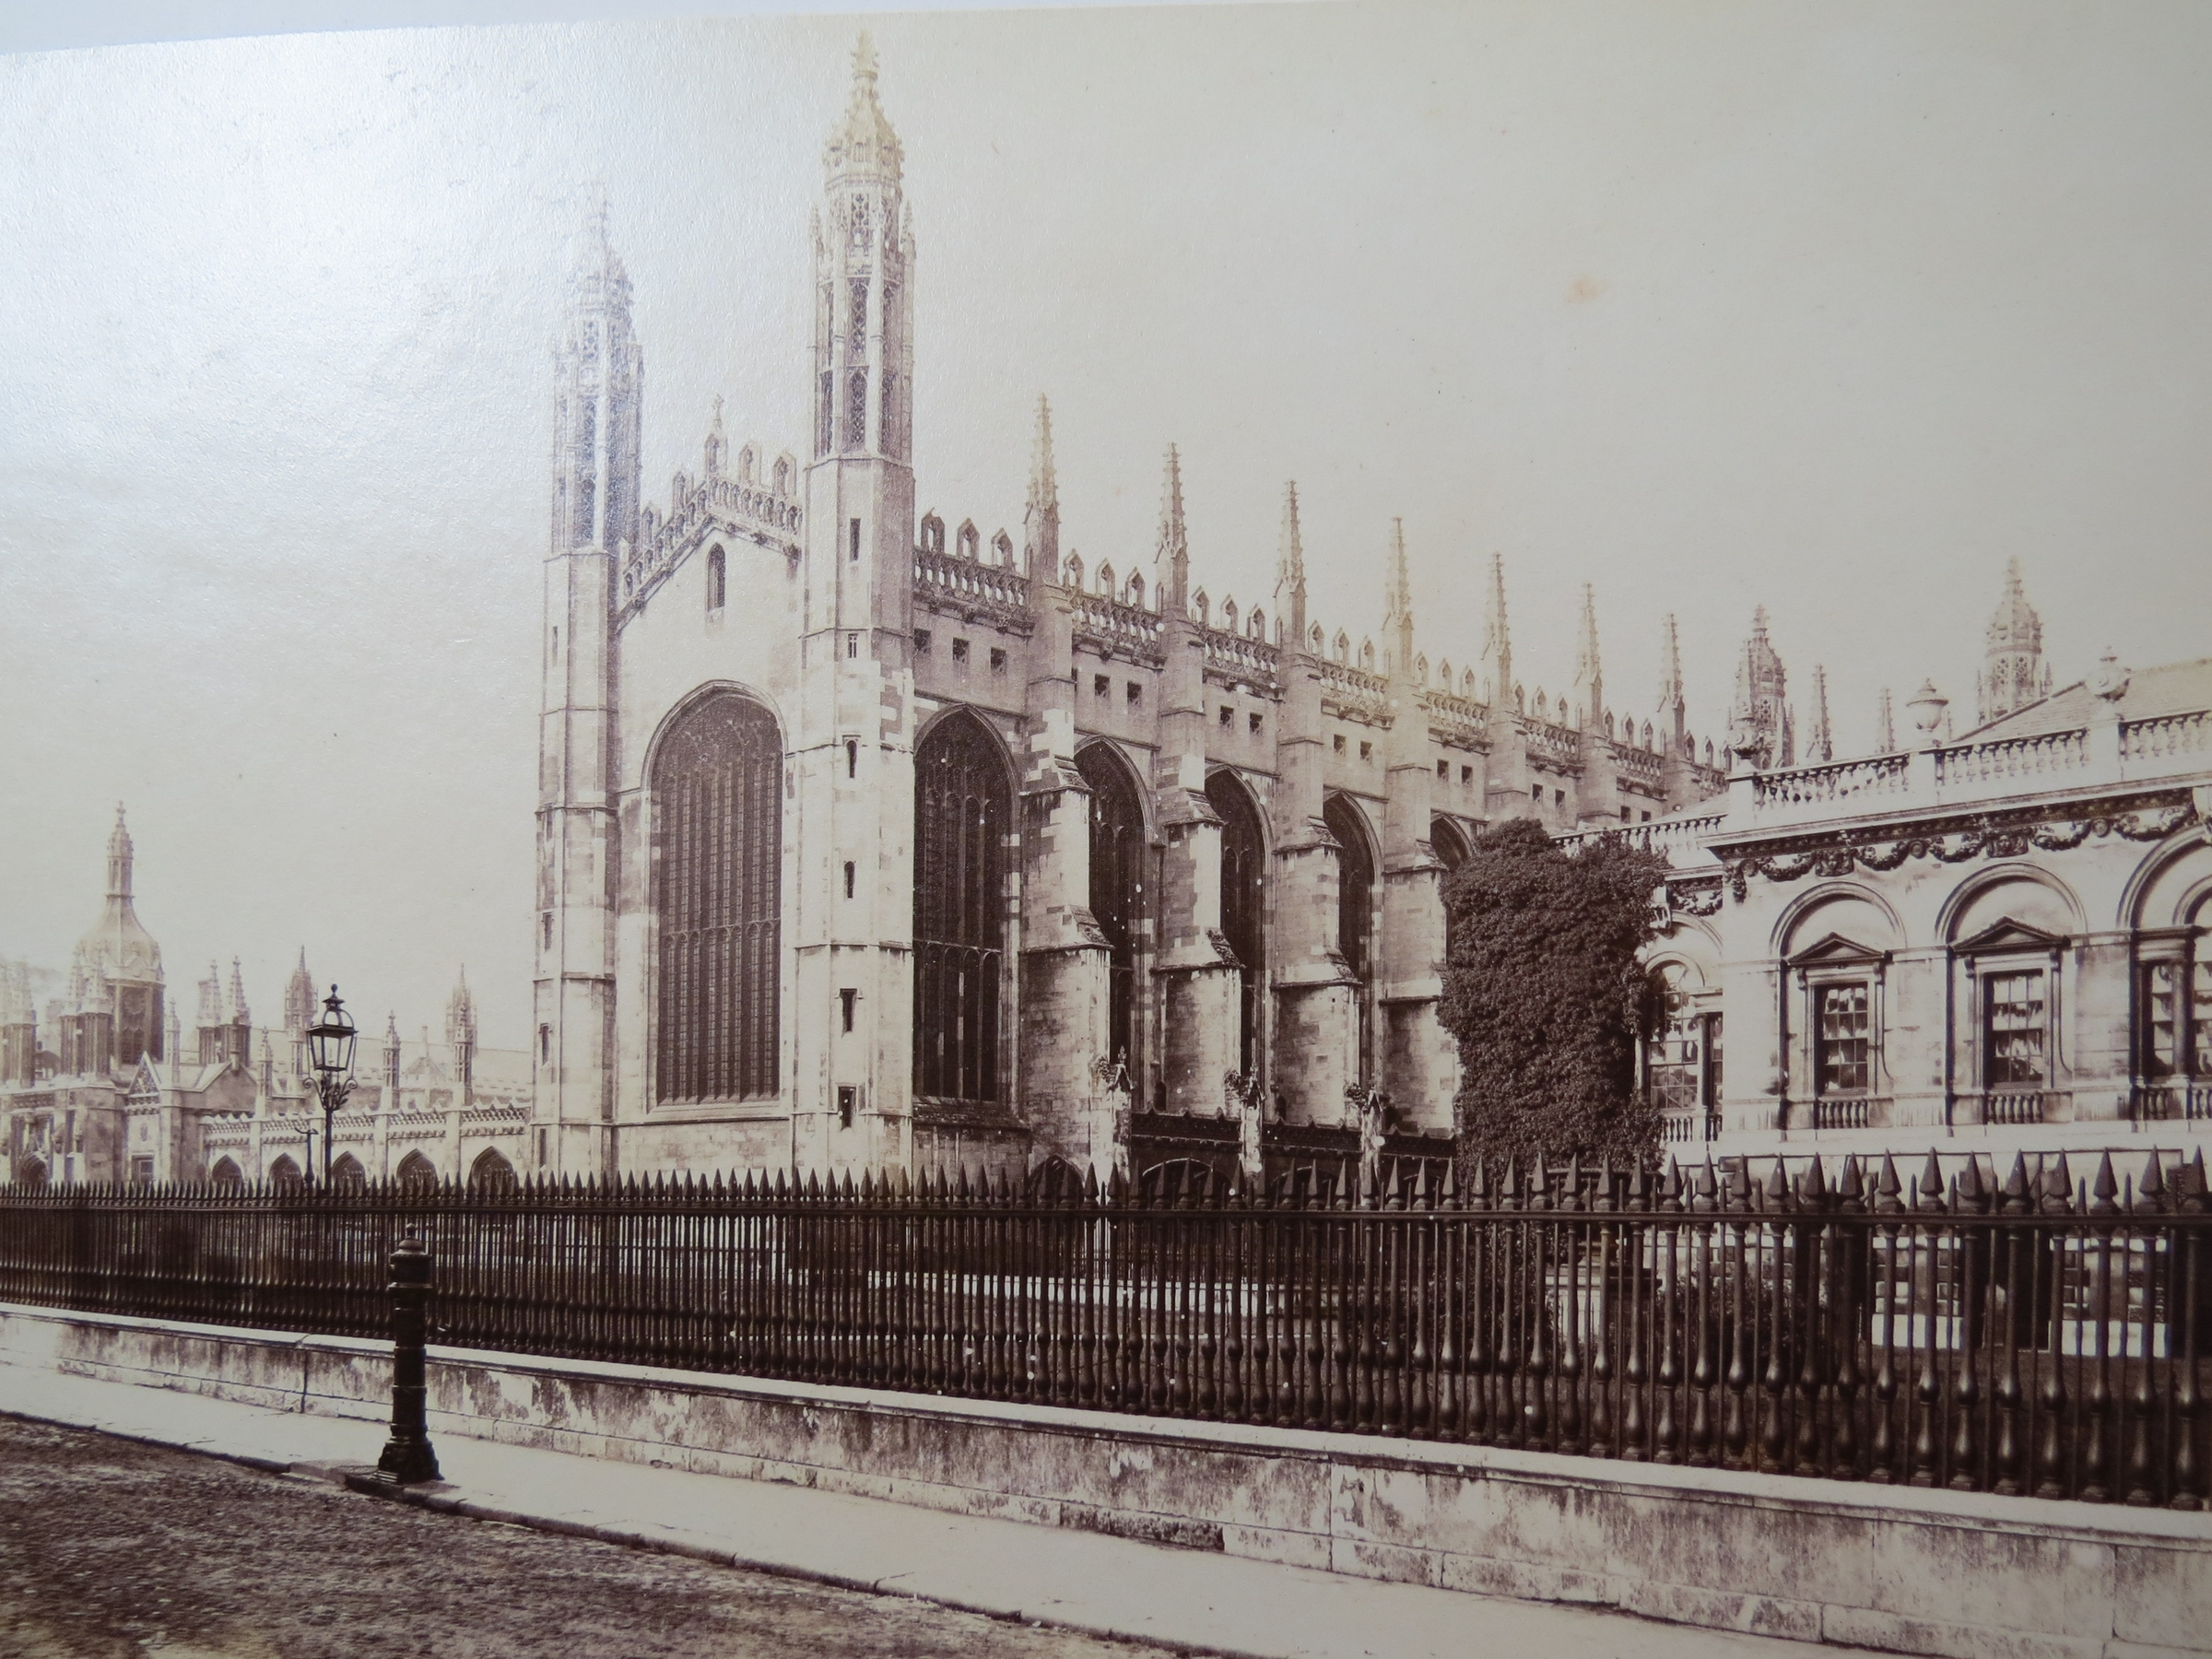 cambridge history The cambridge archives has various collections of documents and photographs  related to the local history of the city of cambridge and surrounding areas.